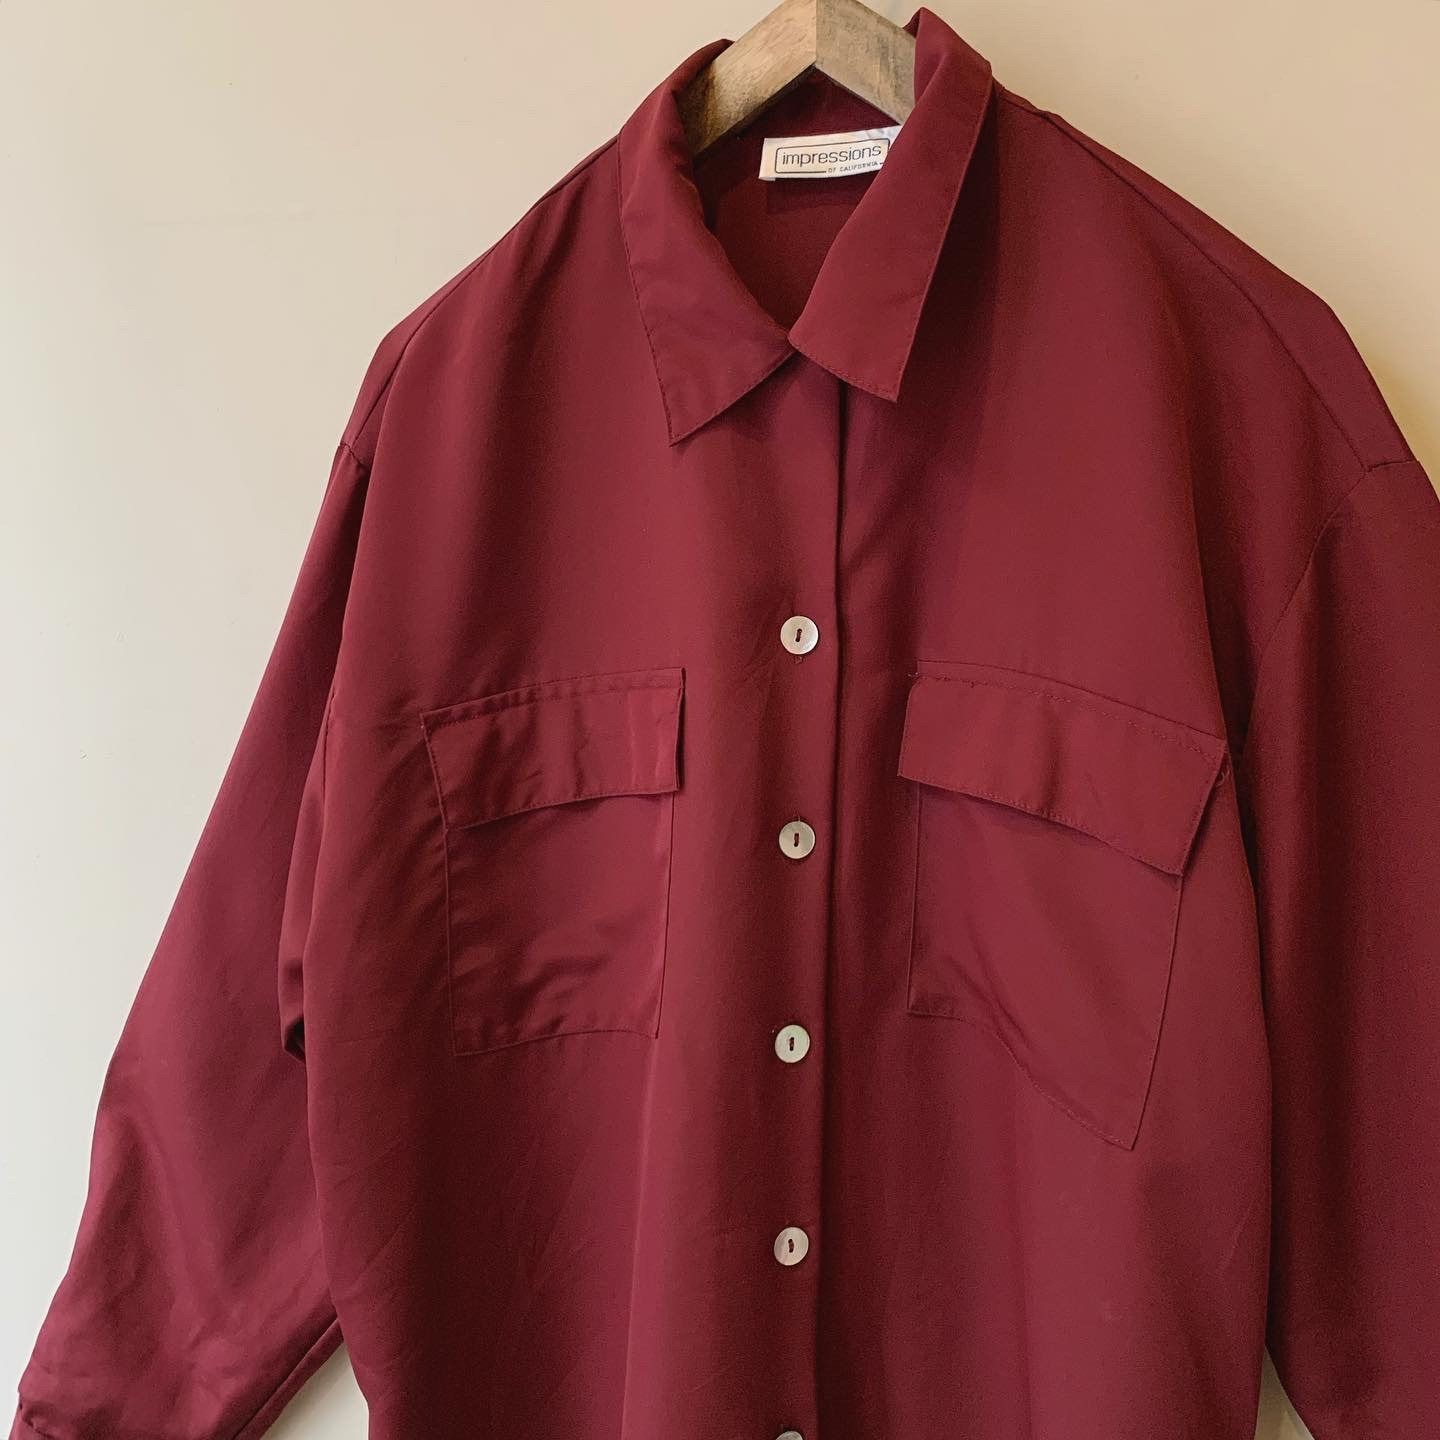 vintage open collar shell button shirts